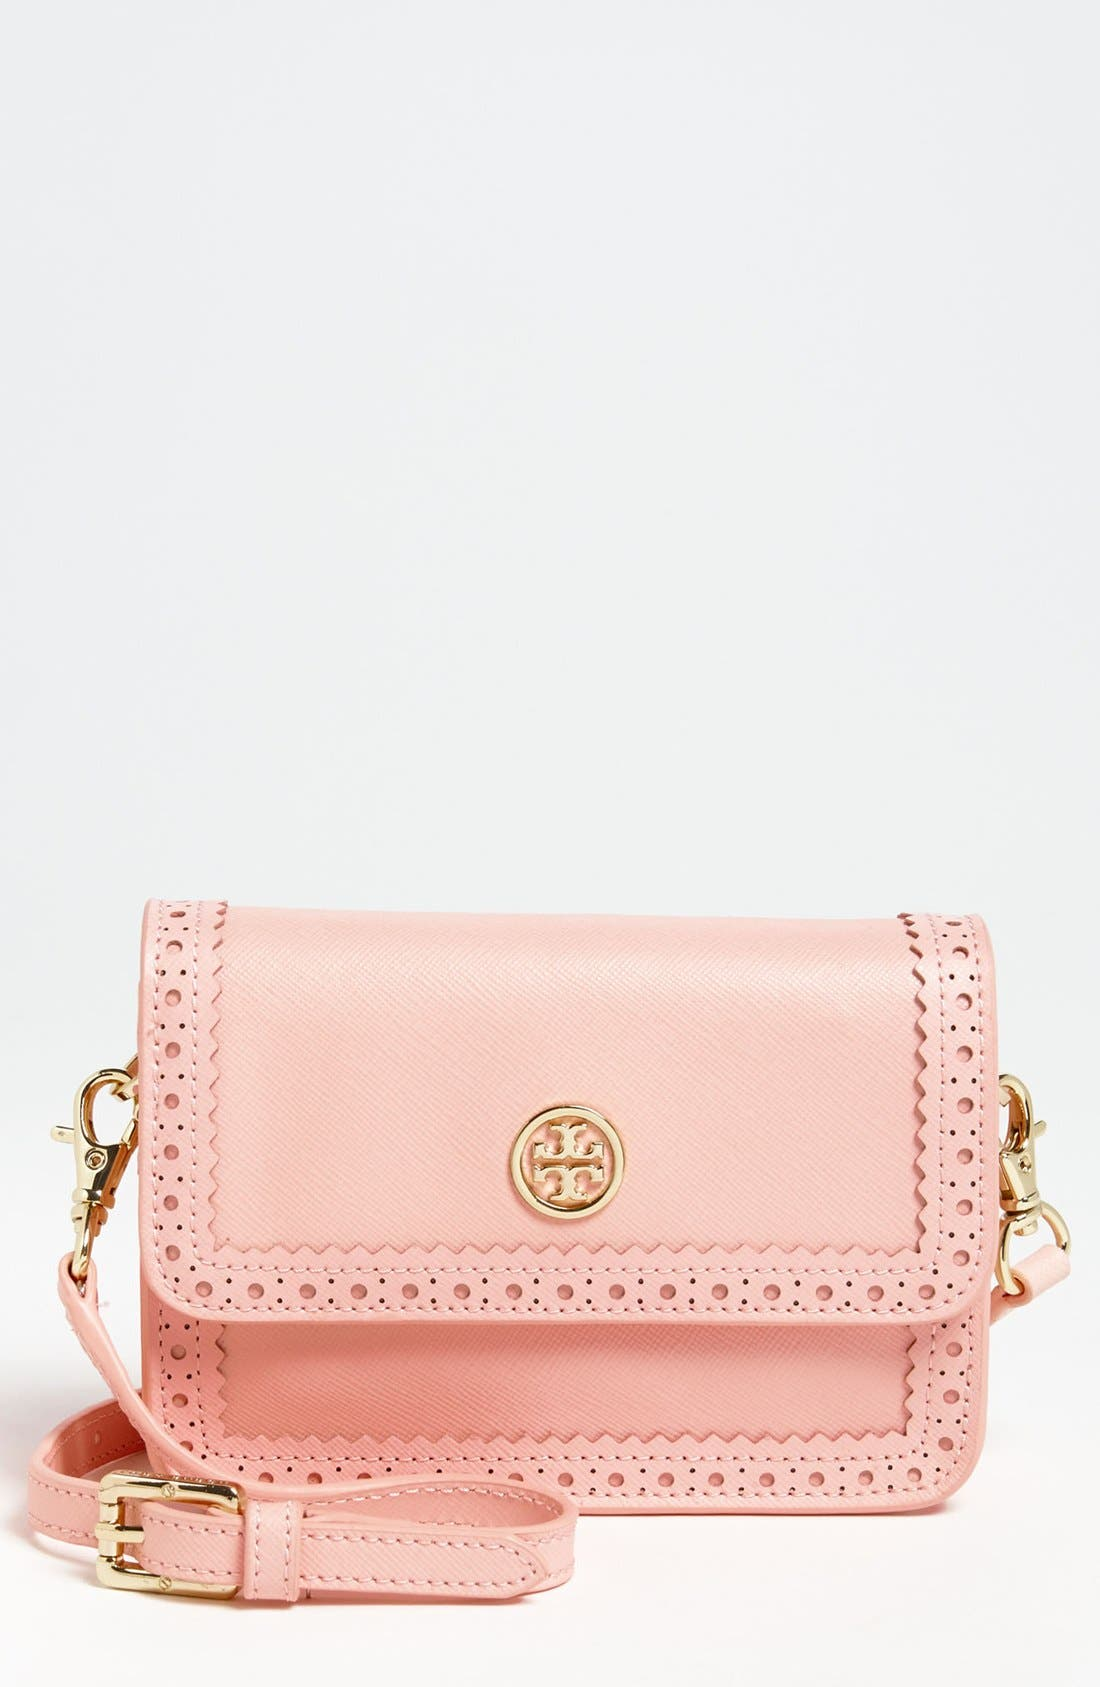 Alternate Image 1 Selected - Tory Burch 'Robinson Spectator - Mini' Saffiano Leather Crossbody Bag